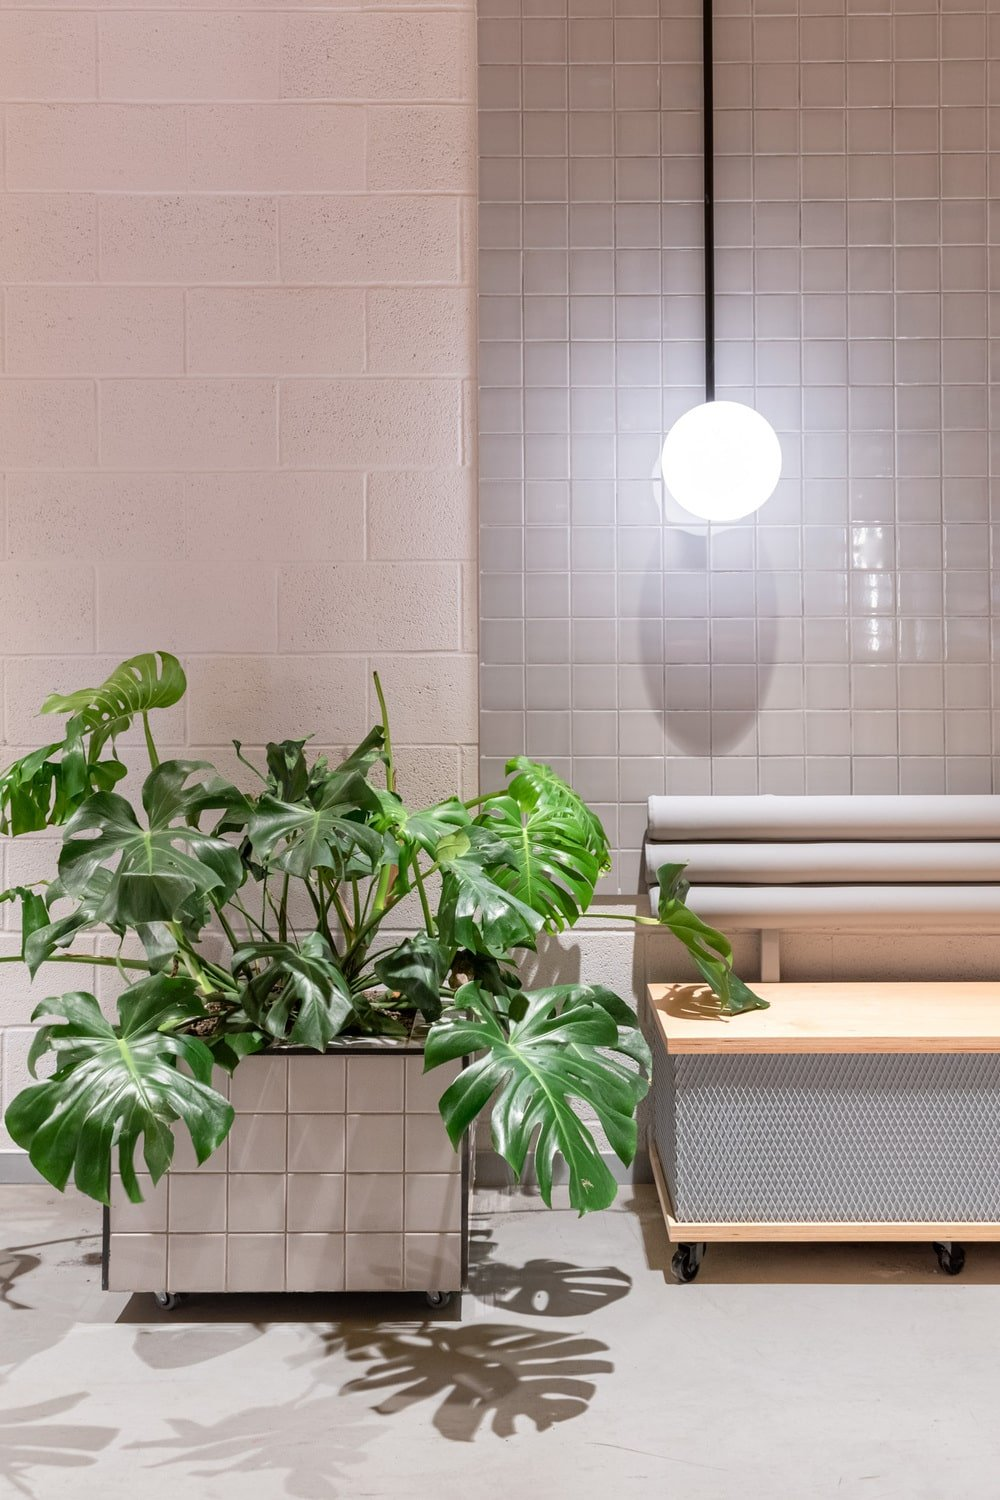 This is a close look at one corner of the area that has a built-in bench, a potted plant and a pendant light above.